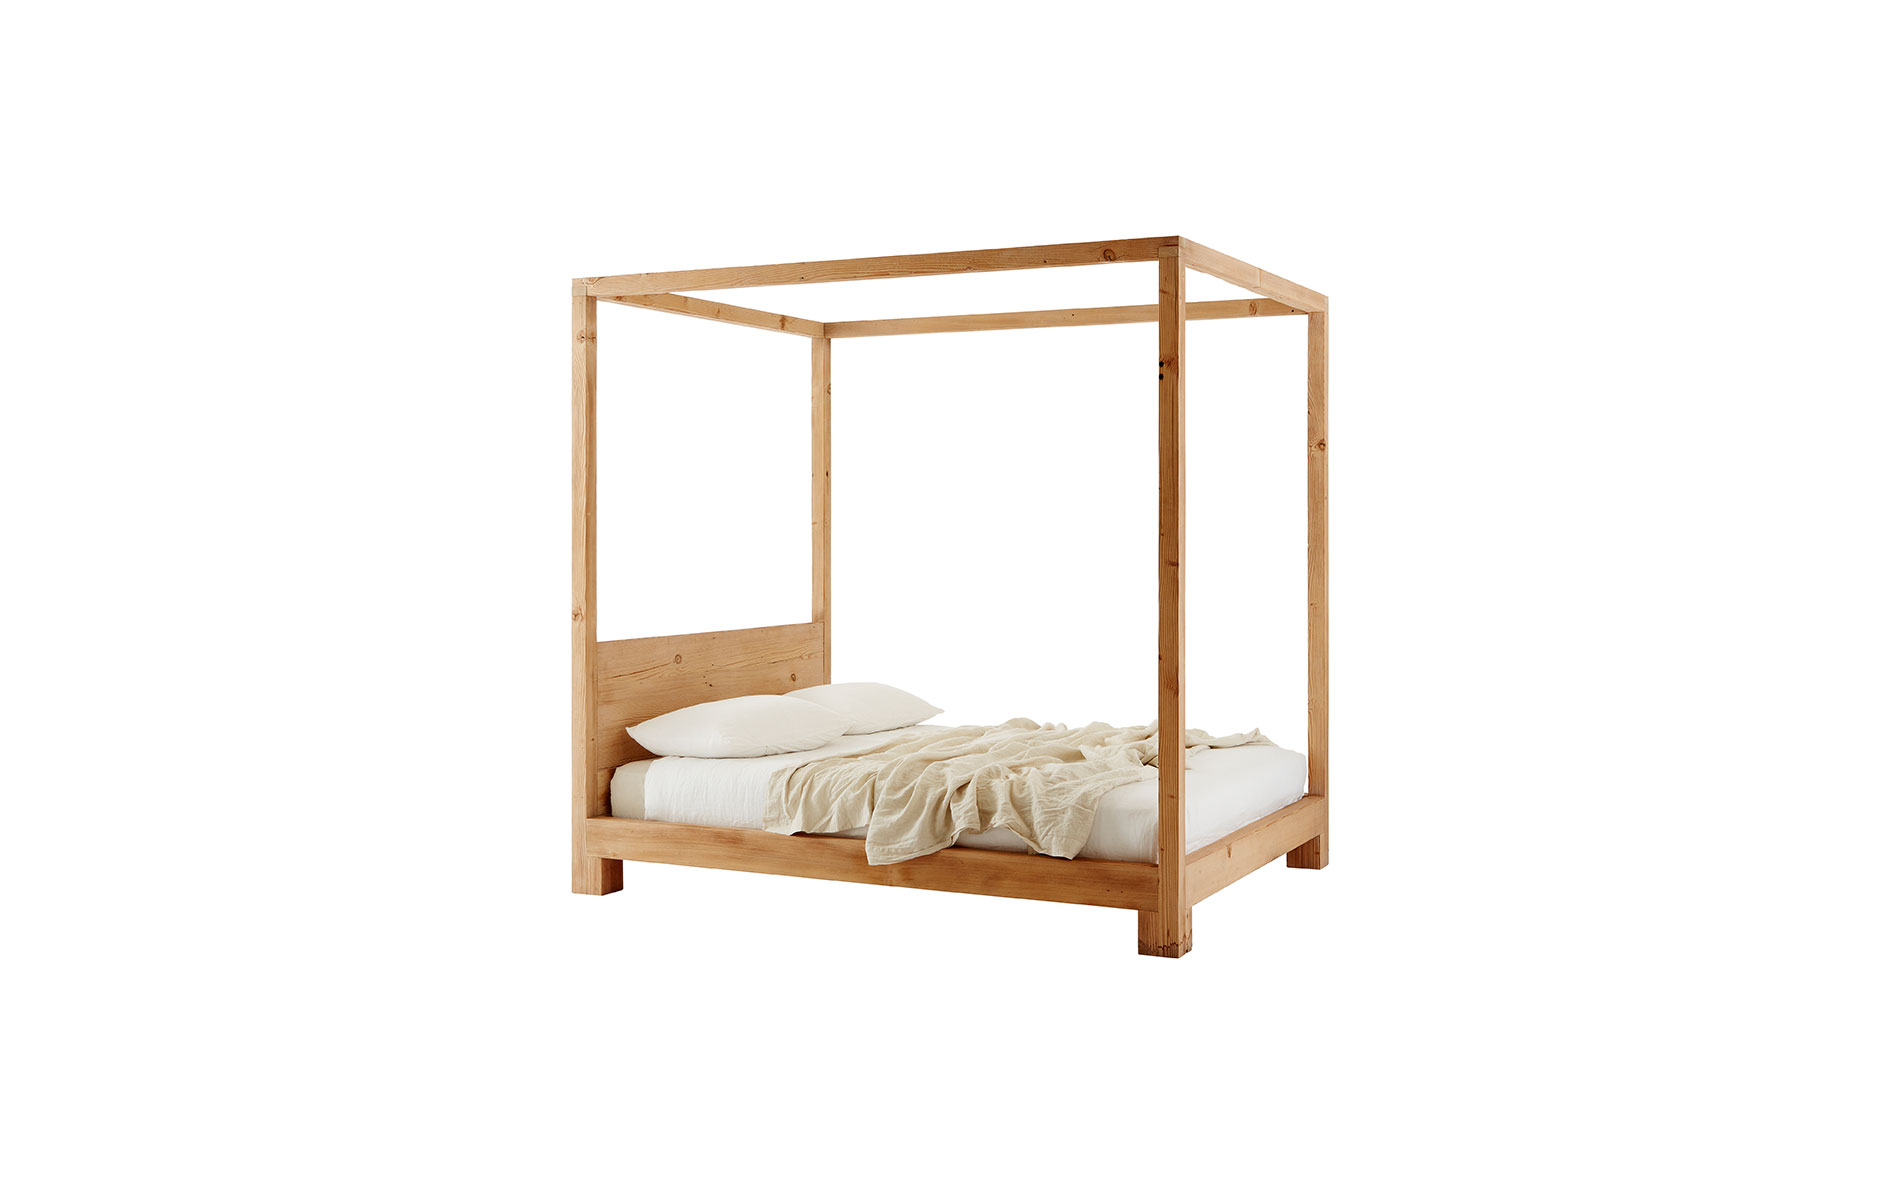 Attractive Simple 4 Poster Bed Part - 13: Simple 4 Poster